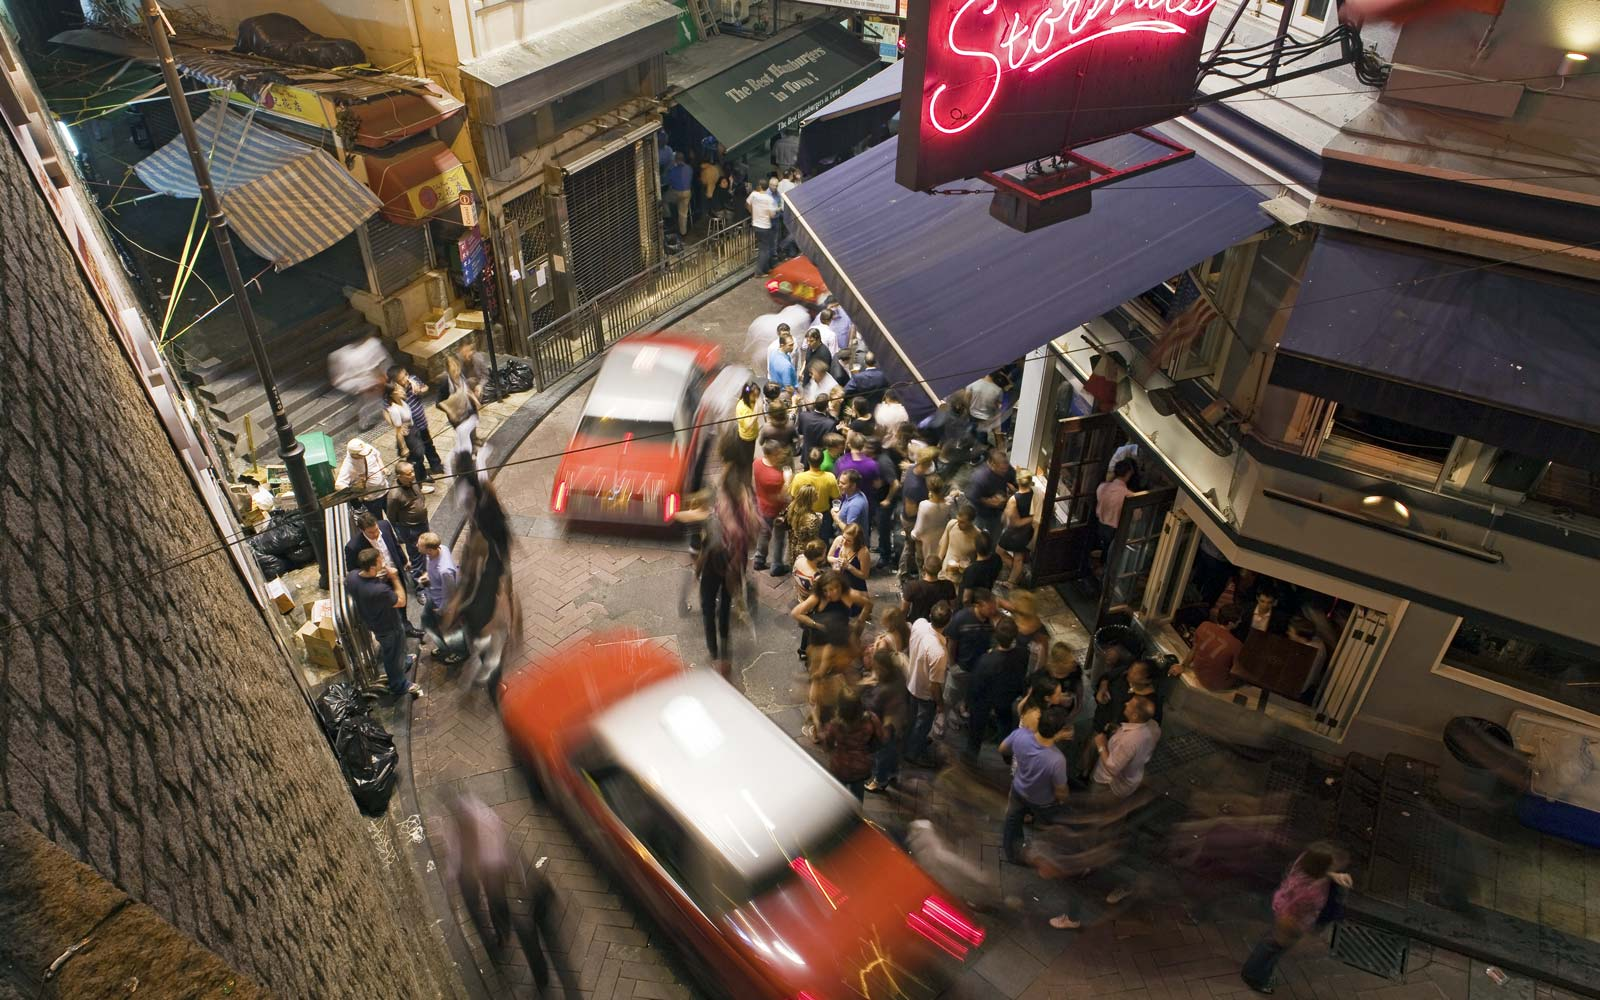 A Night Out in Hong Kong's Lan Kwai Fong Neighborhood